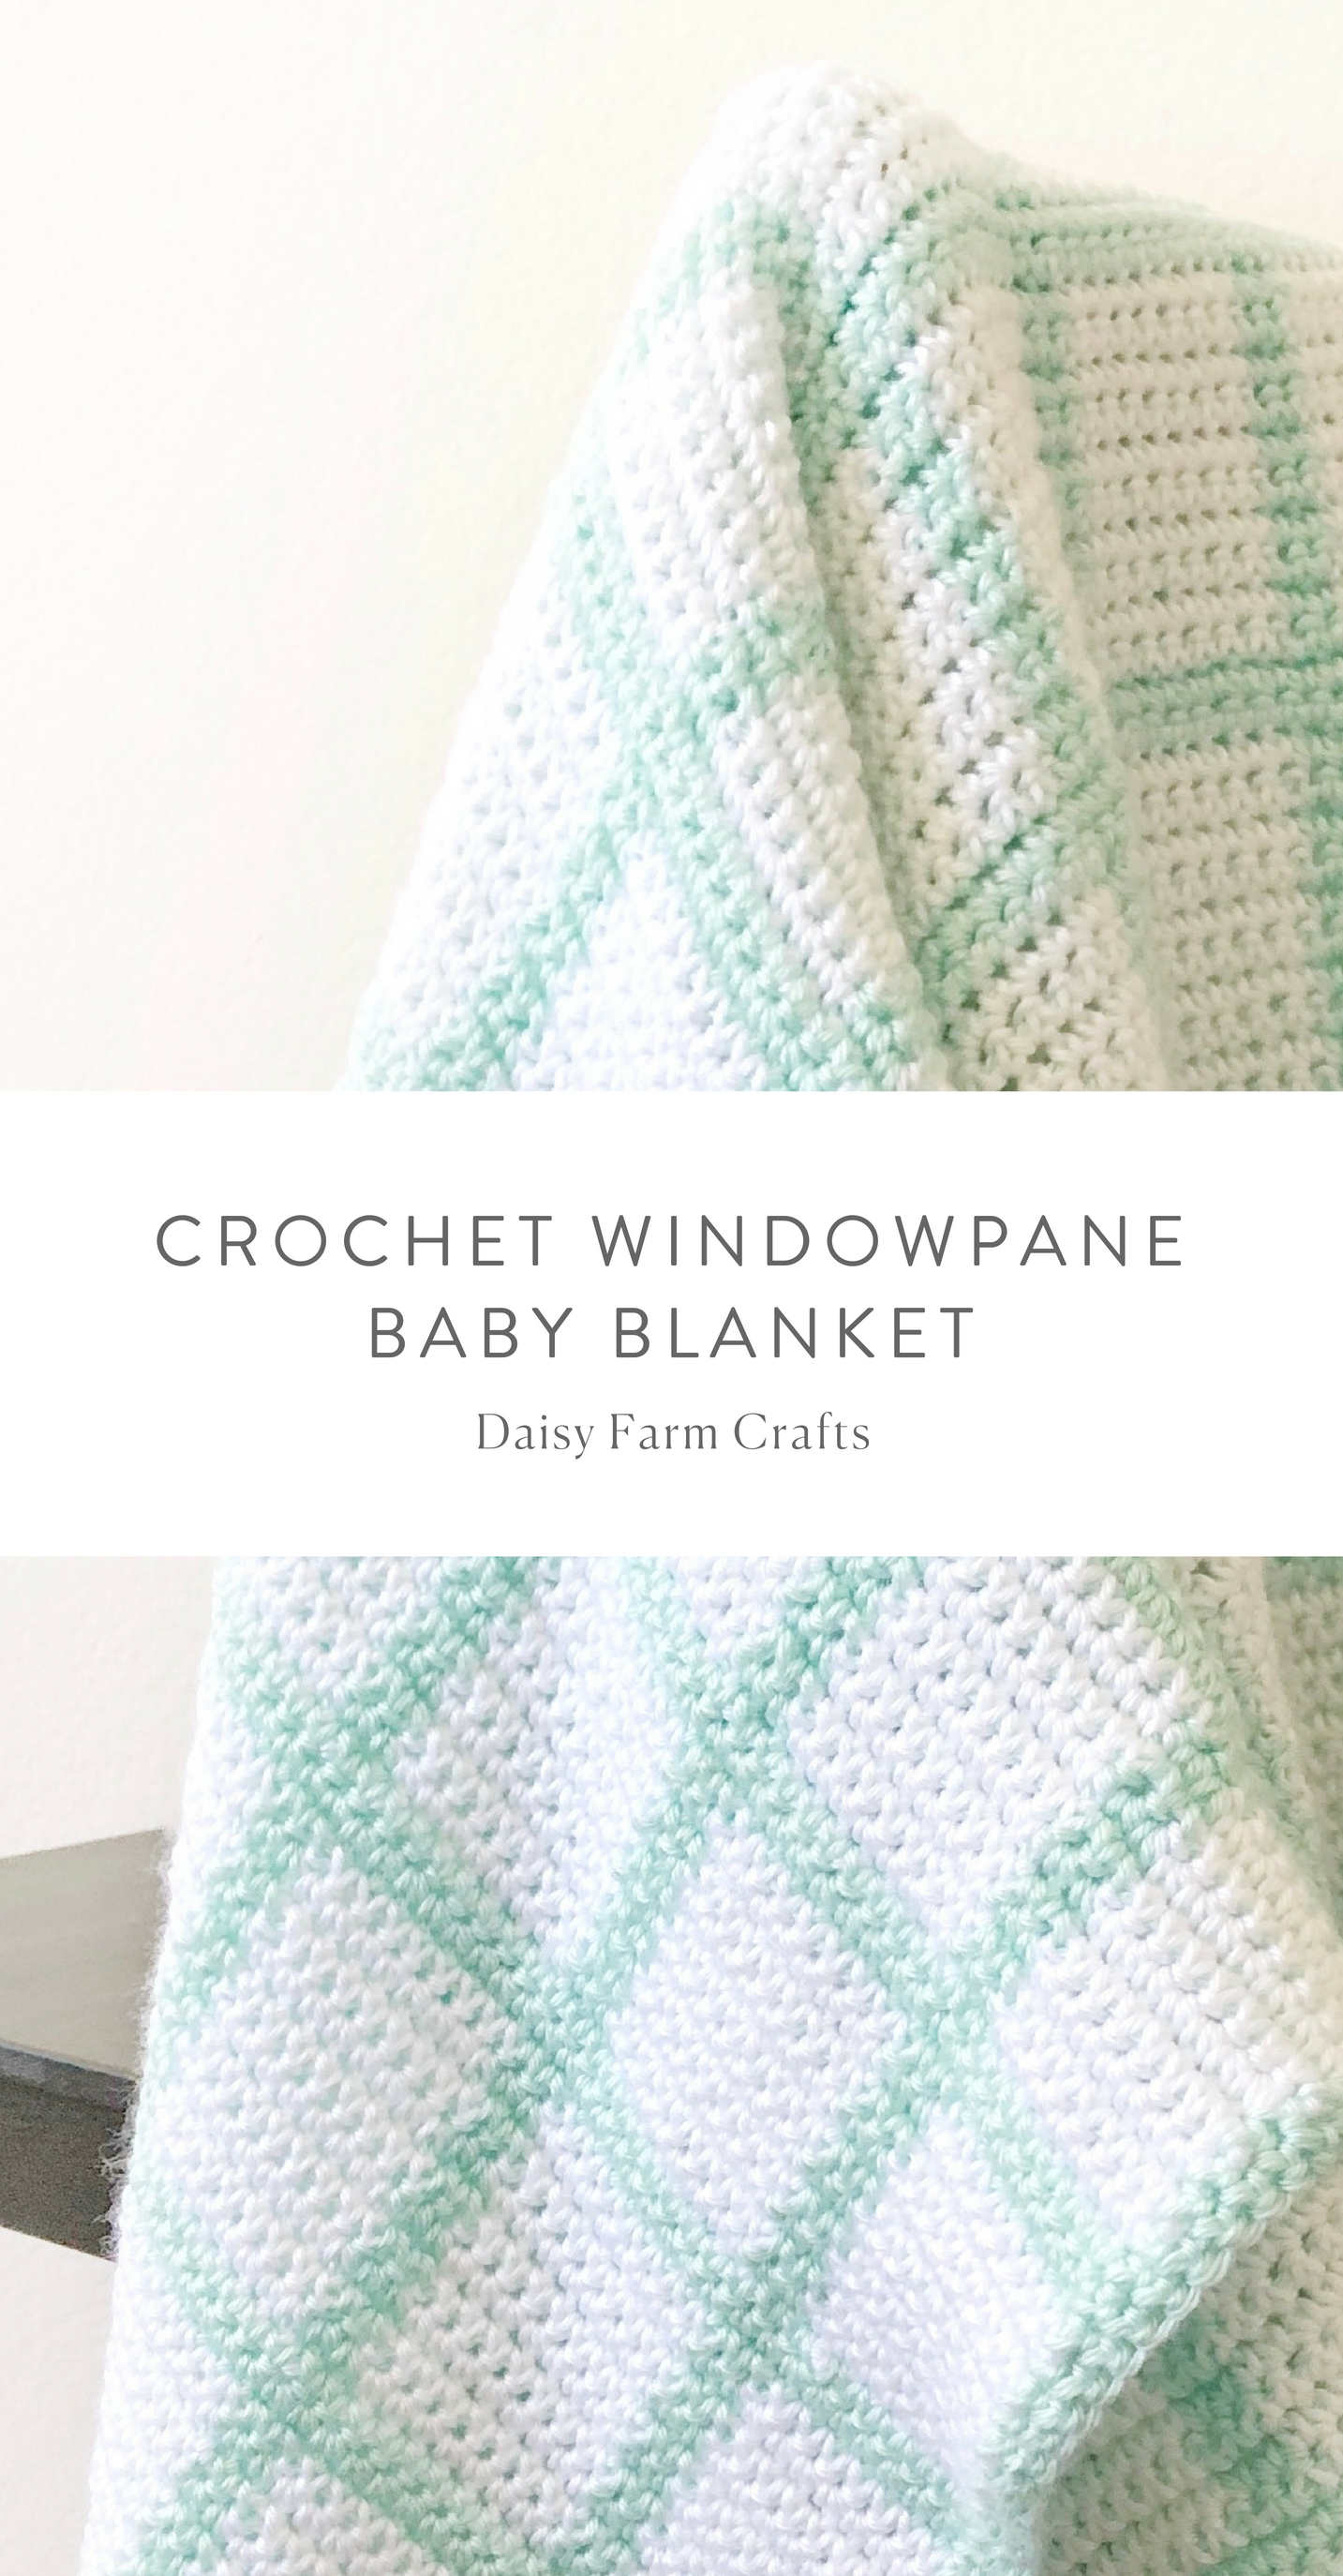 Free Pattern - Crochet Windowpane Blanket #crochet | Crochet ...